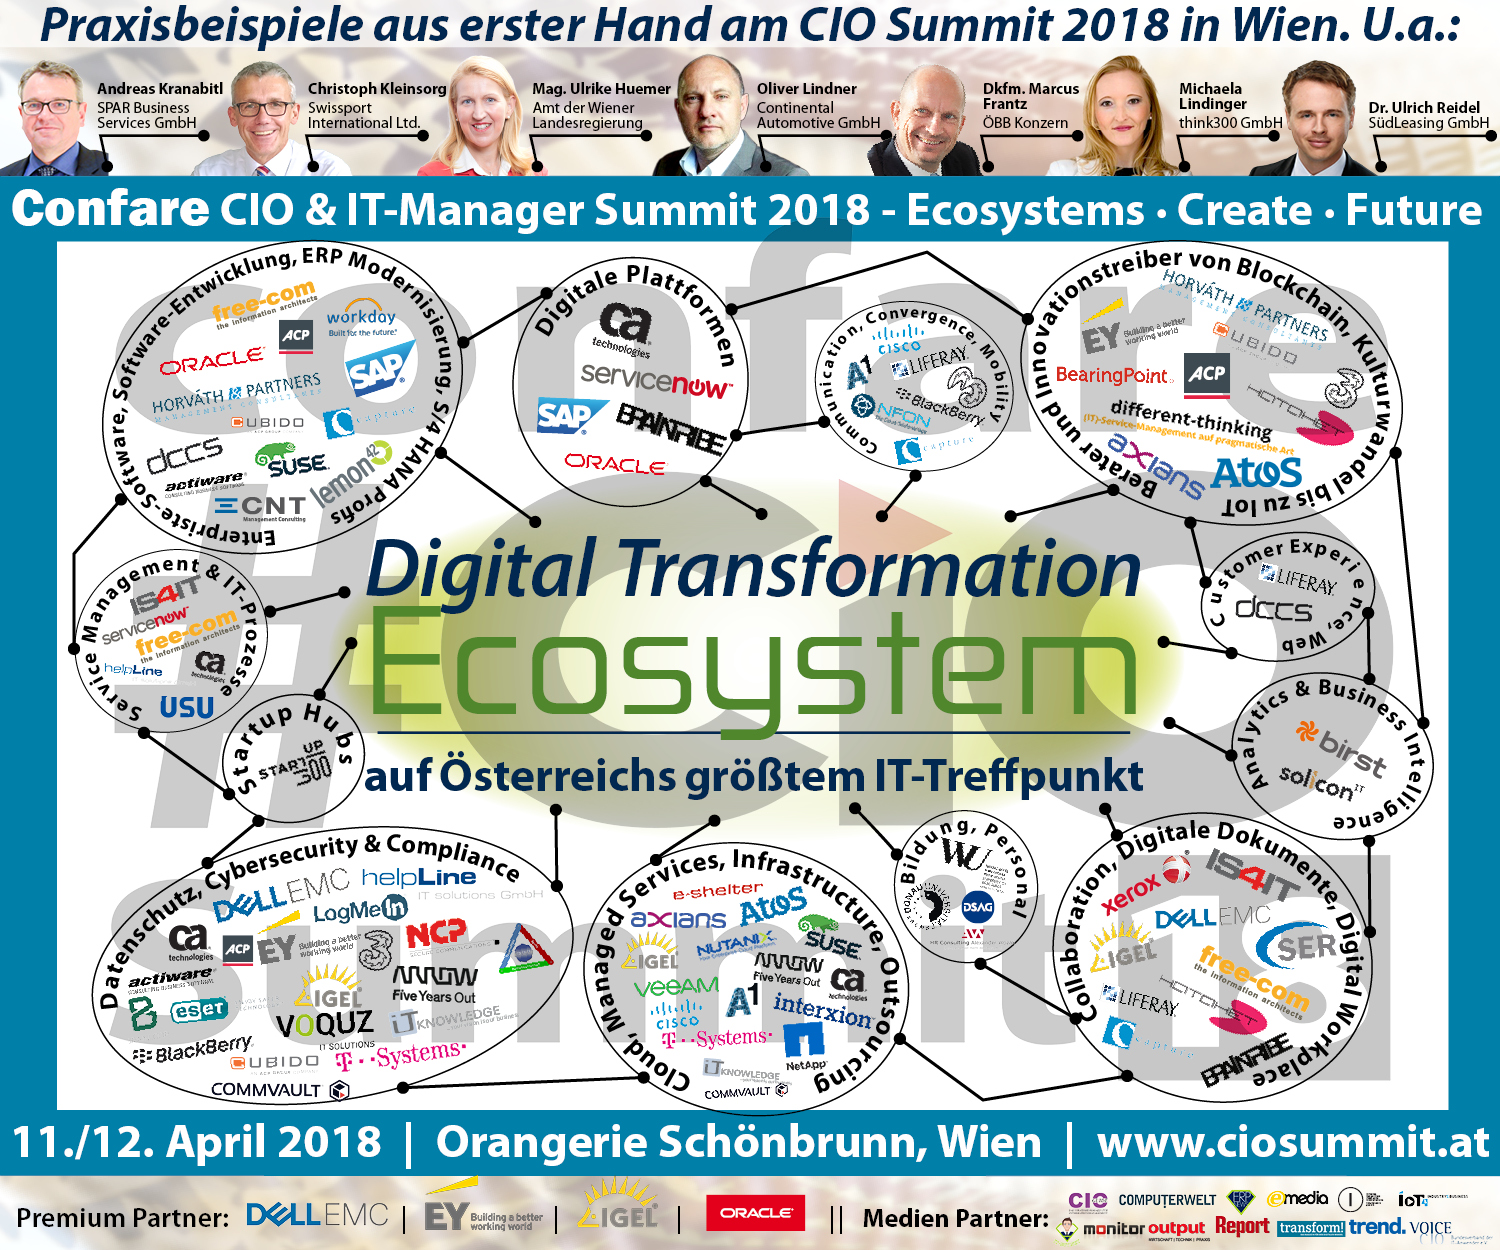 CIO Digital Transformation Ecosystem